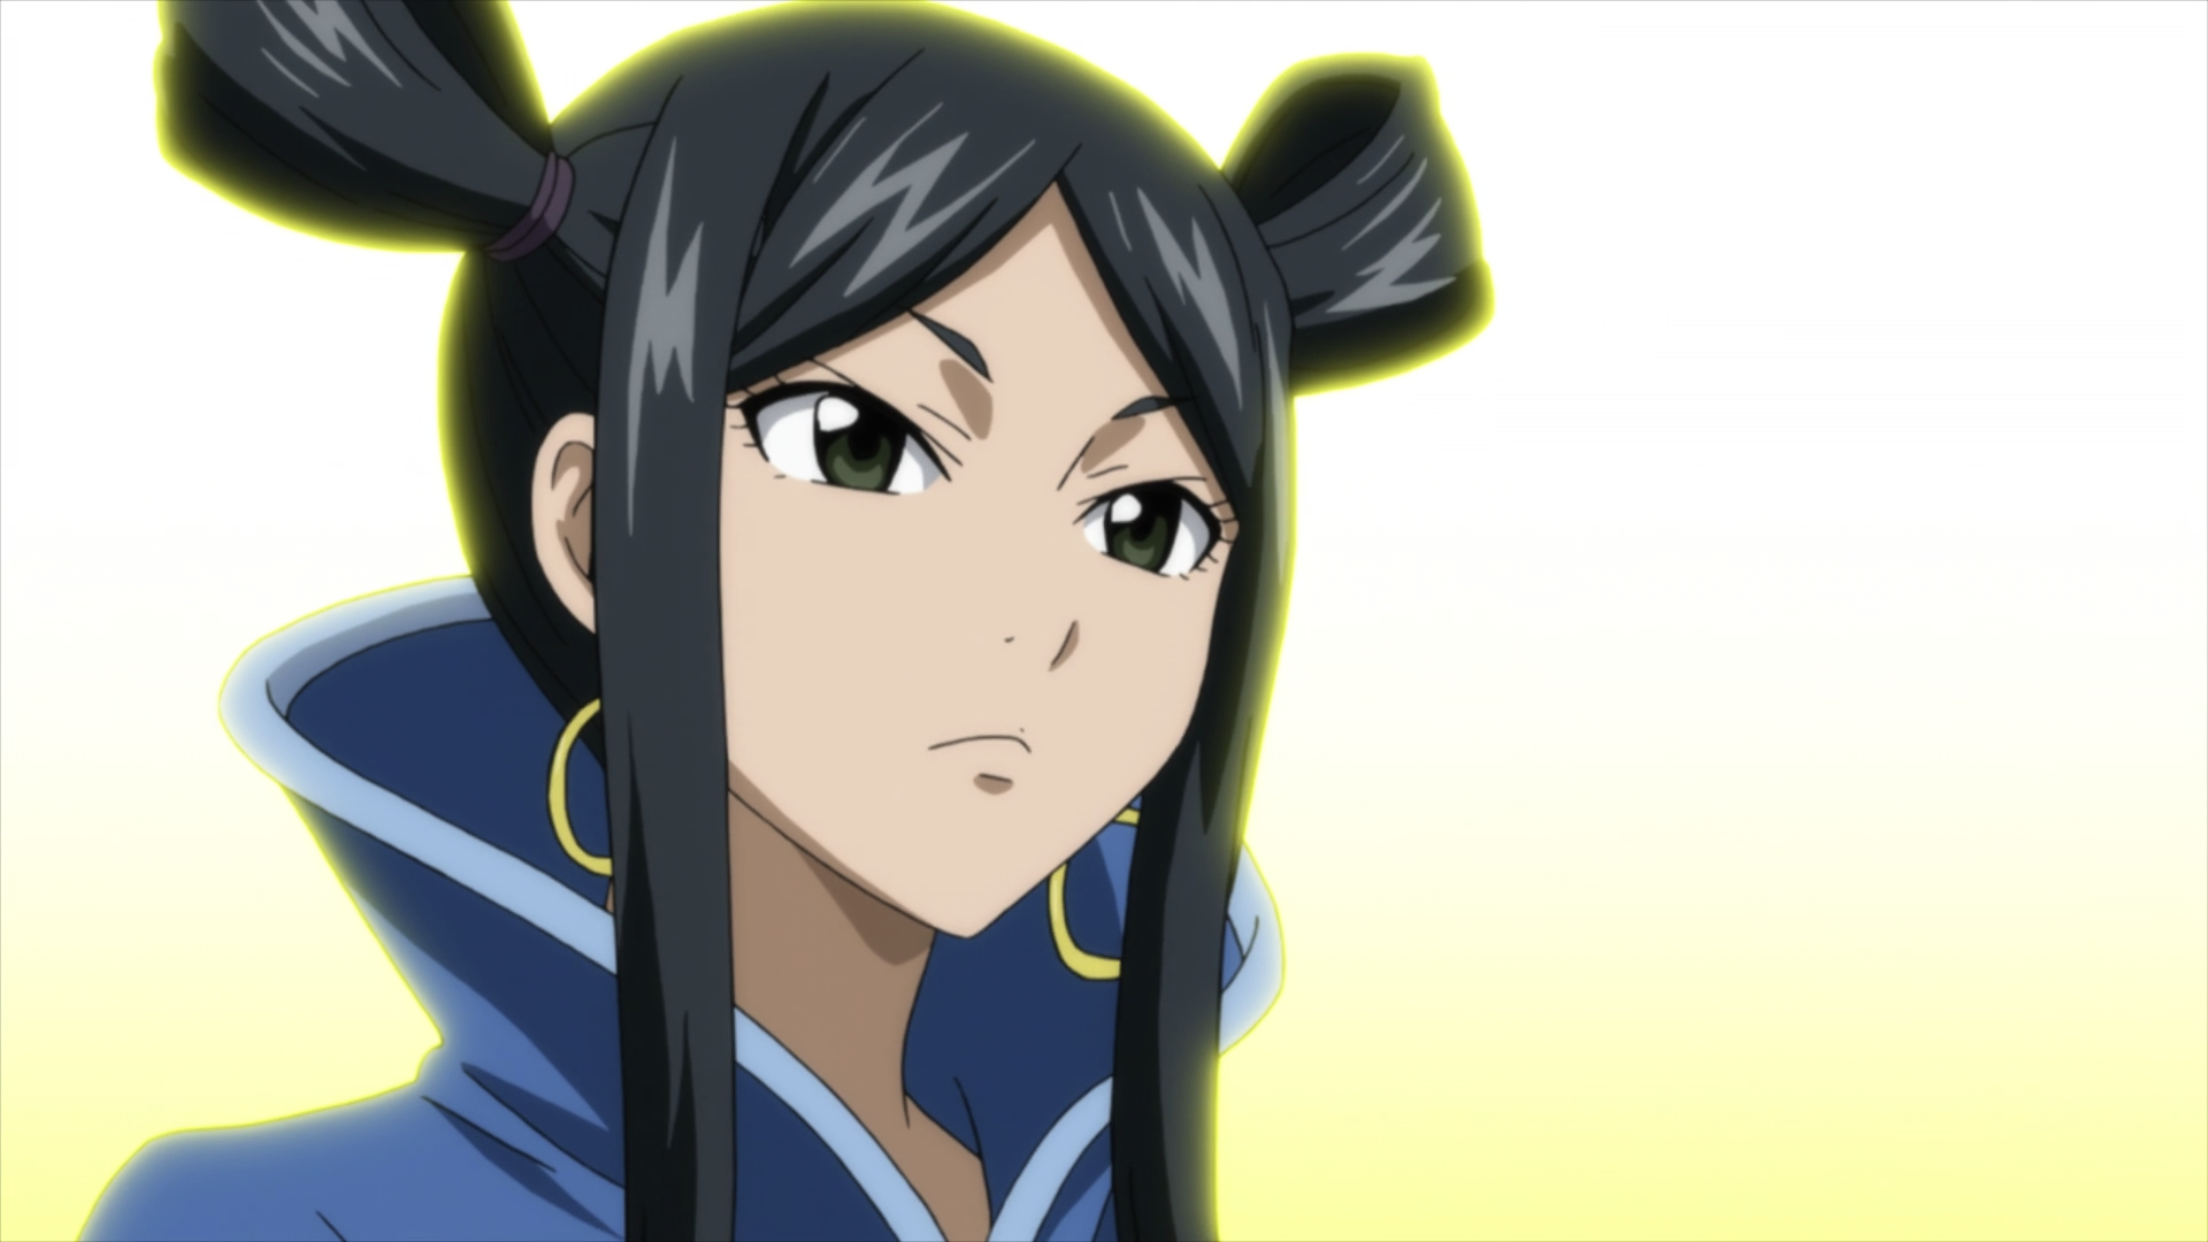 Fairy Tail 2018 Episode 17 Fairy tail characters, Fairy